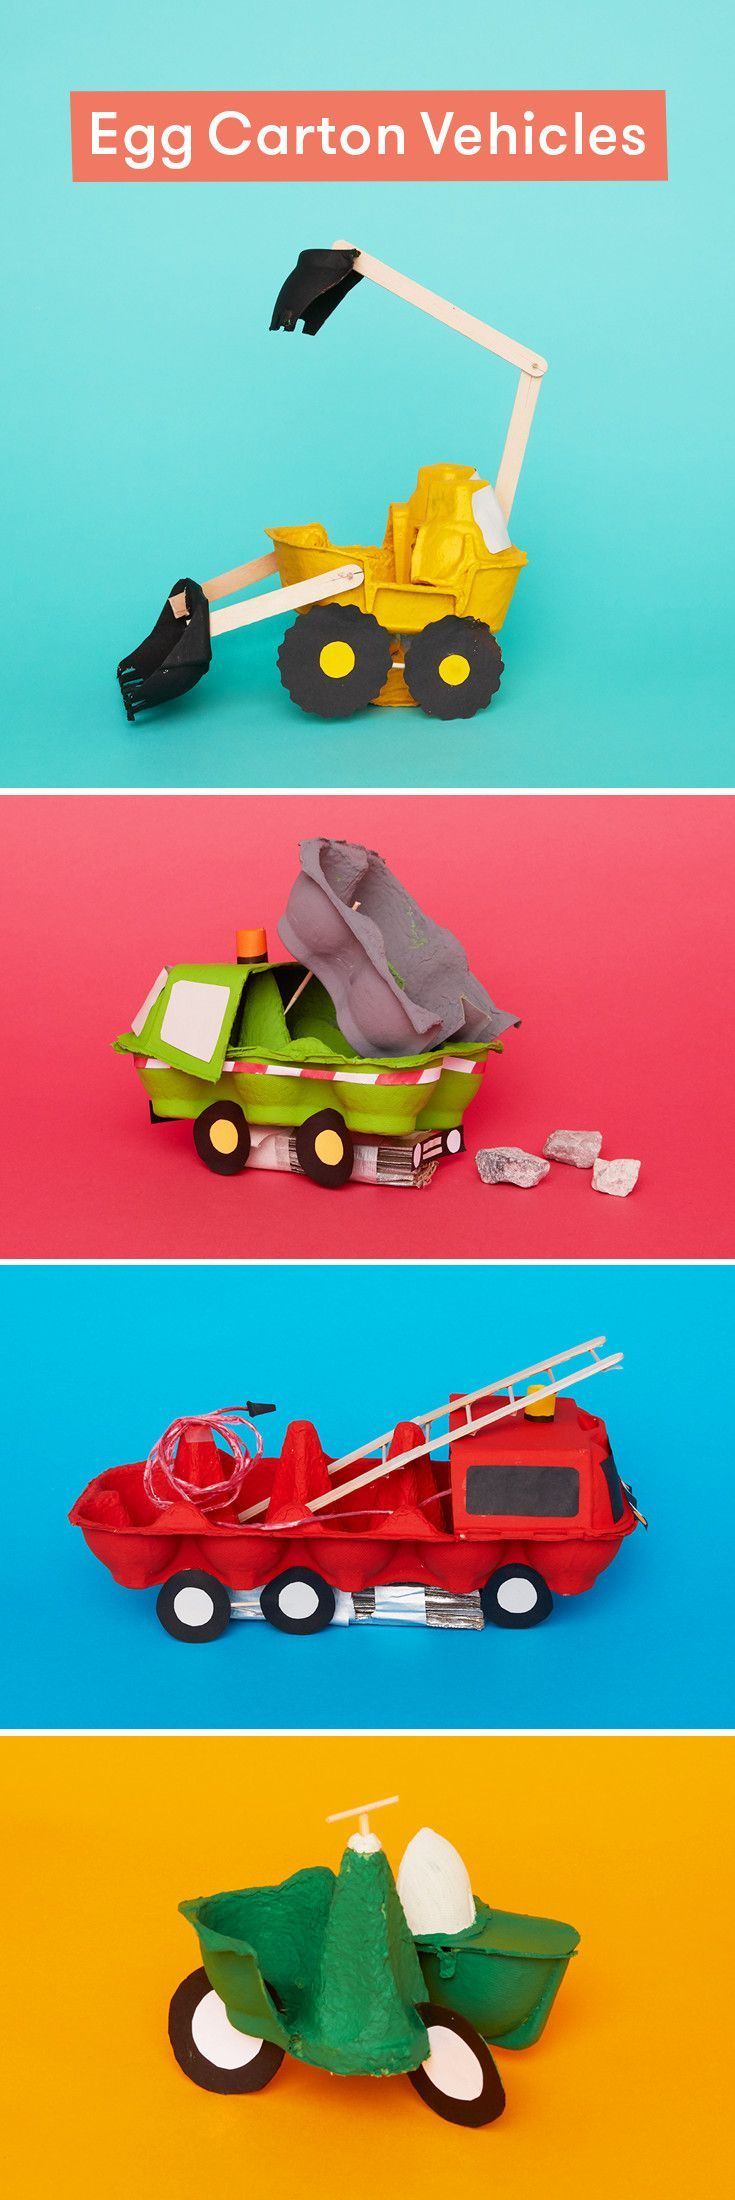 8 egg box vehicles you can craft at home   Wonderbly